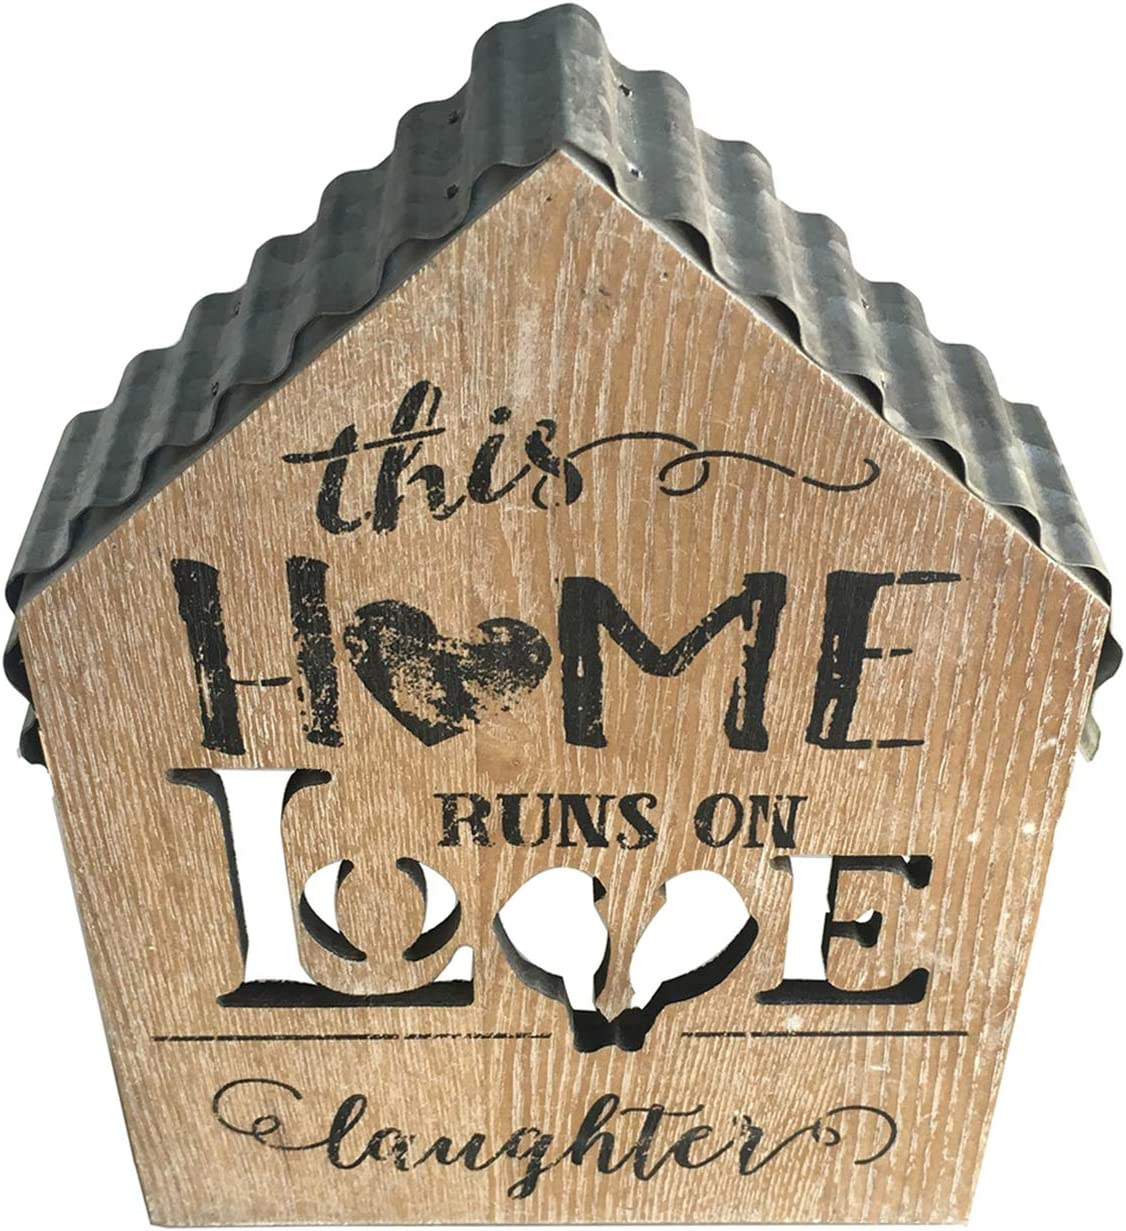 Love Home Mini House Model Decor with Iron Roof, Wooden Rustic Farmhouse Block Sign Coffee Table Decoration with Hollow Letters, This Home Runs on Love Laughter